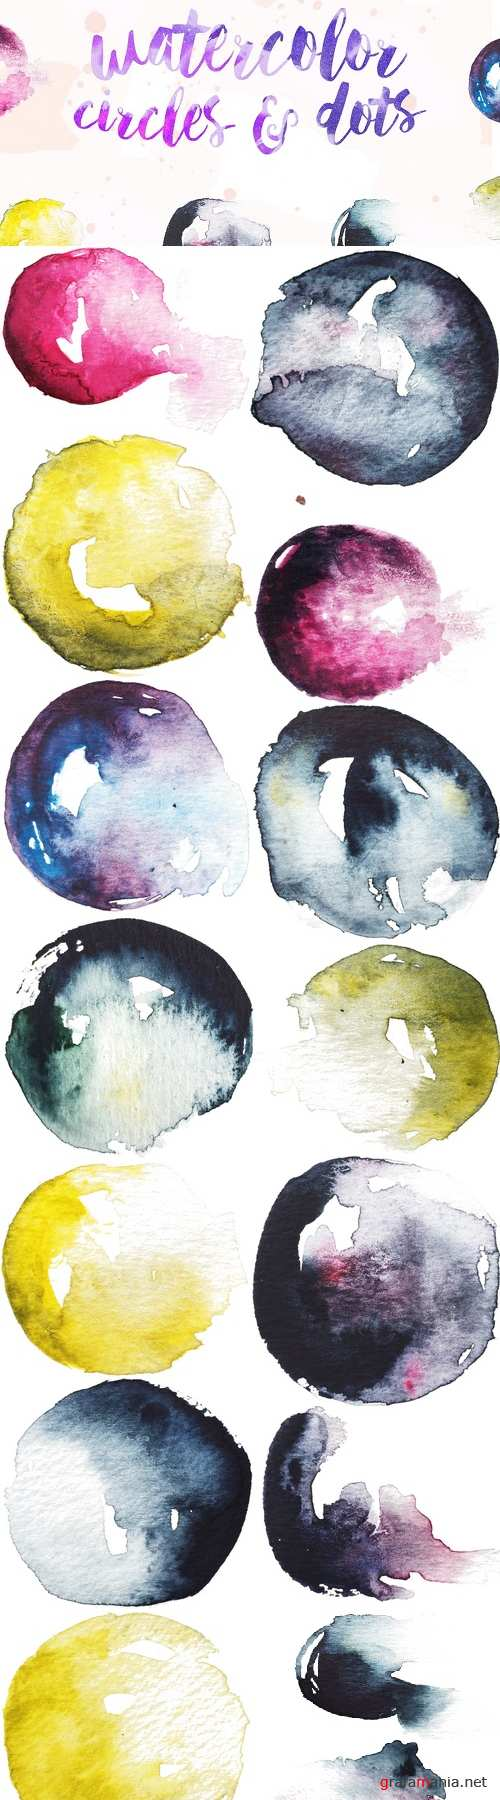 Watercolor Circles & Dots